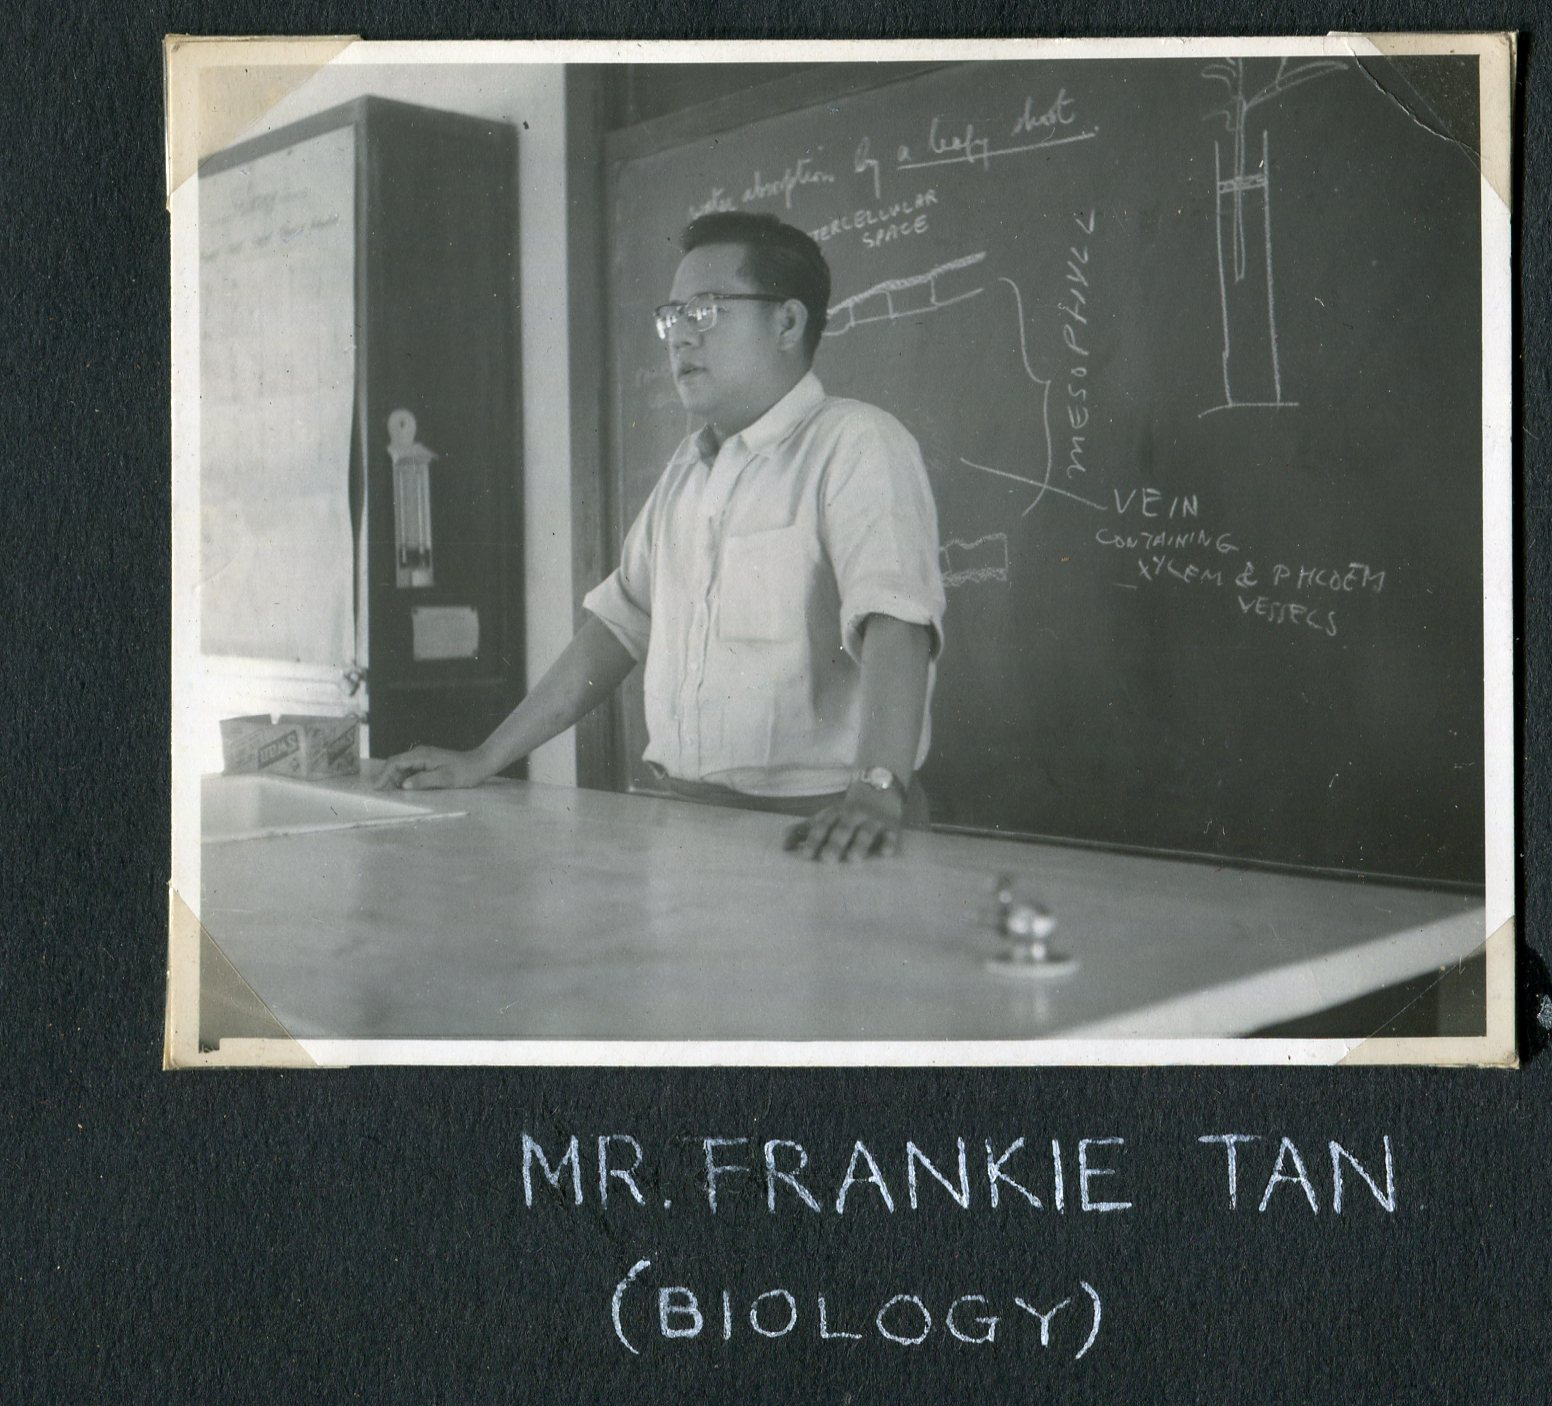 1955-Mr-Frankie-Tan